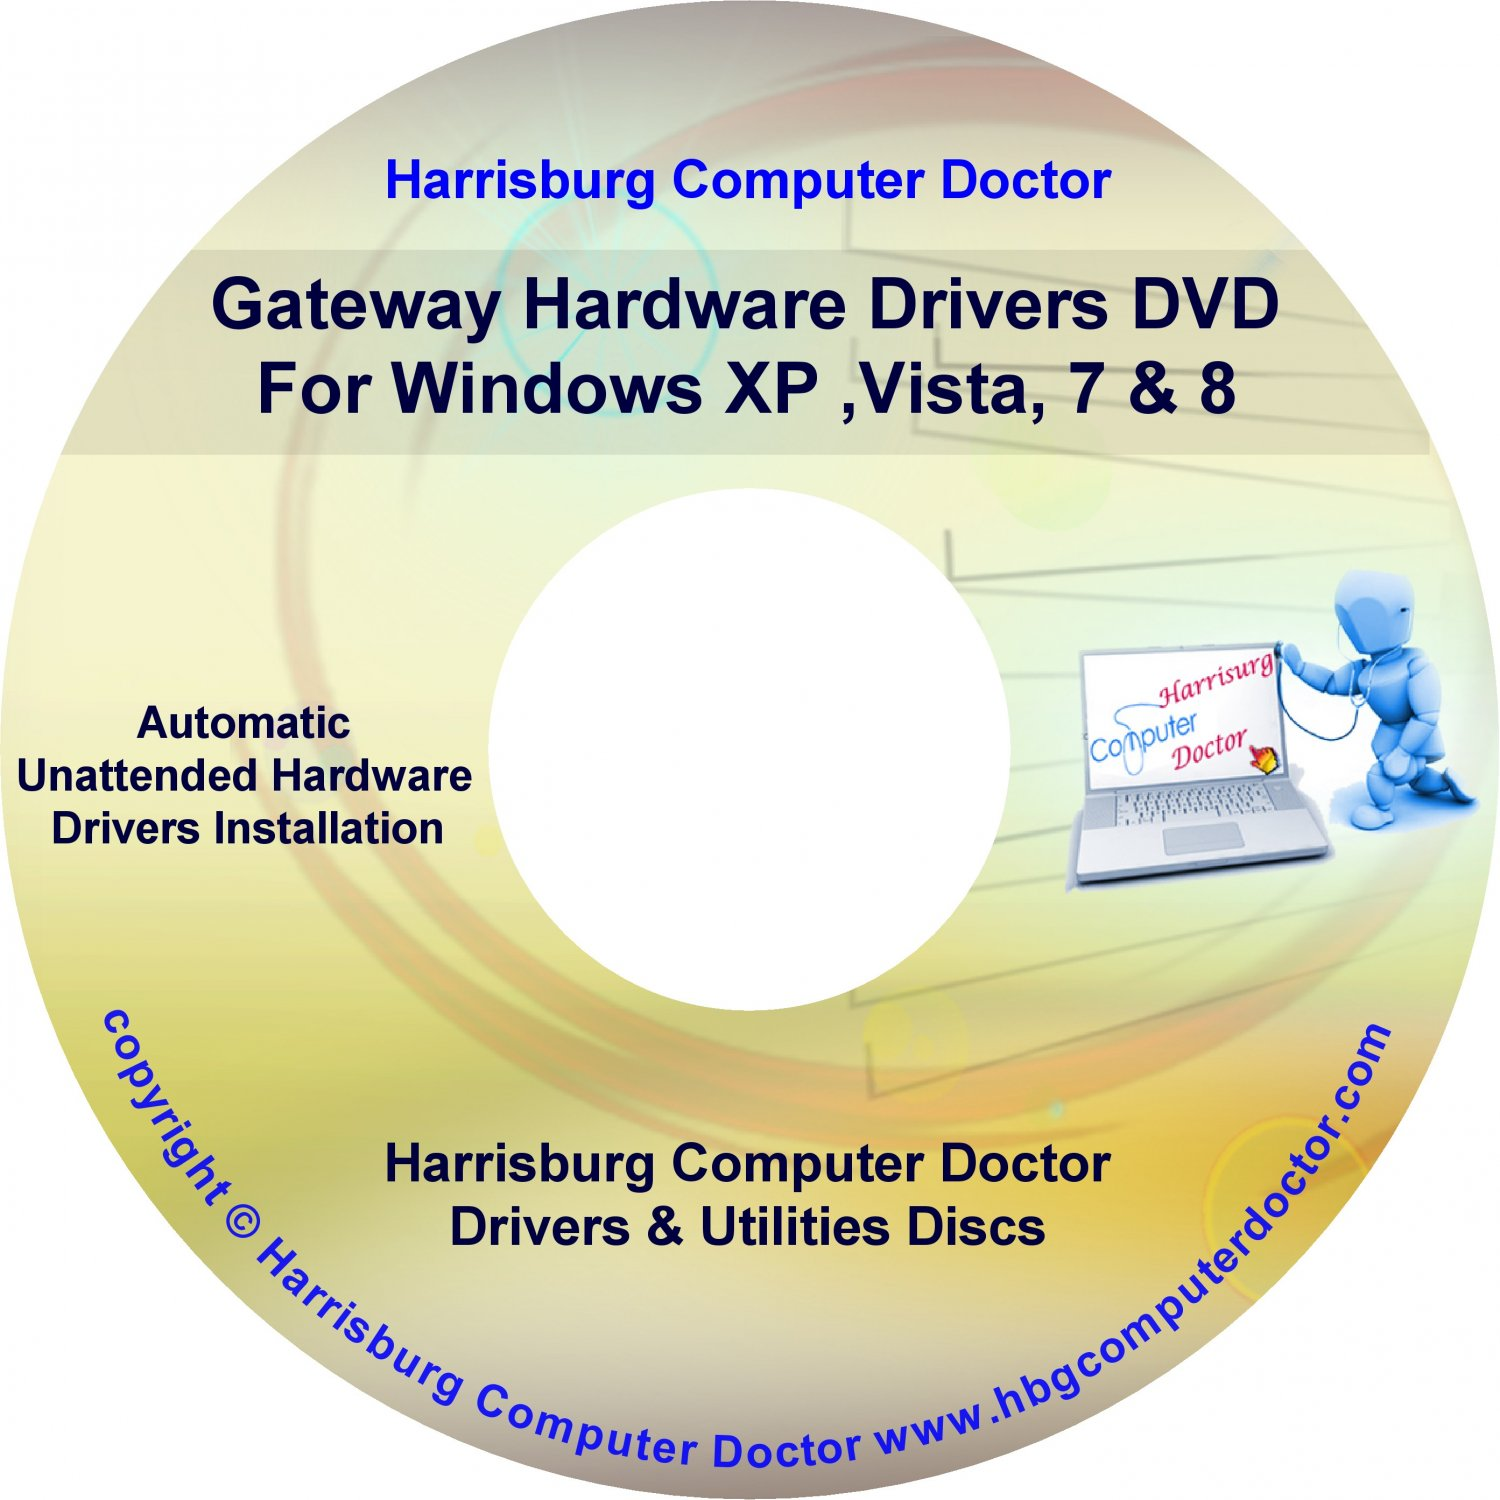 Gateway T-6315c Drivers DVD For Windows, XP, Vista, 7 & 8